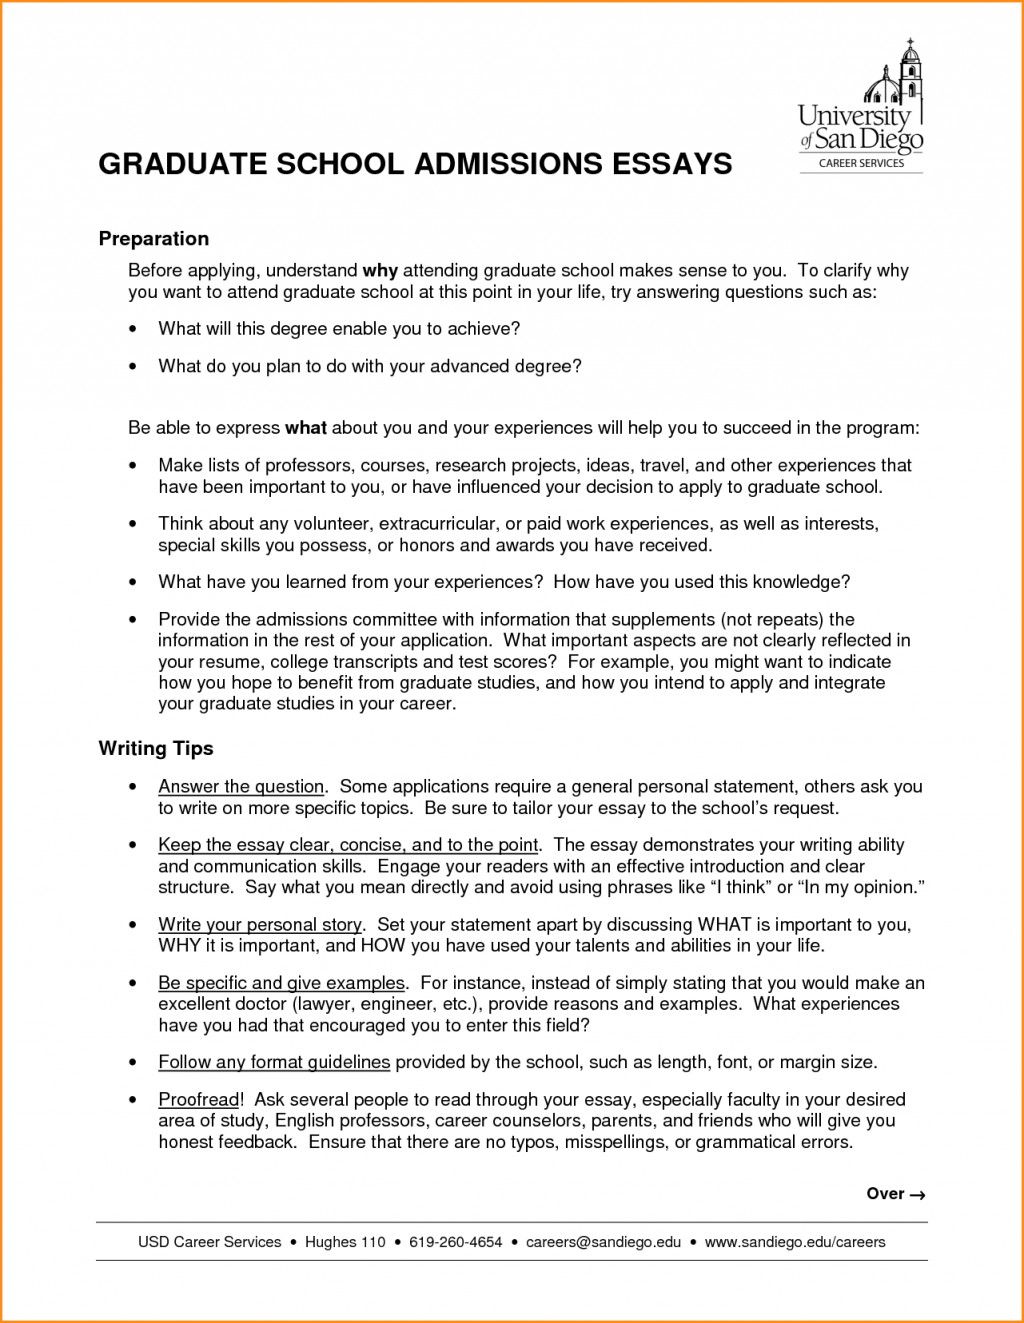 003 High School Admission Essay Sample Graduate Nursing Samples Admissions Examples Psychology Education Counseling Free Business Engineering Example Surprising For Masters How To Write An Degree In Large